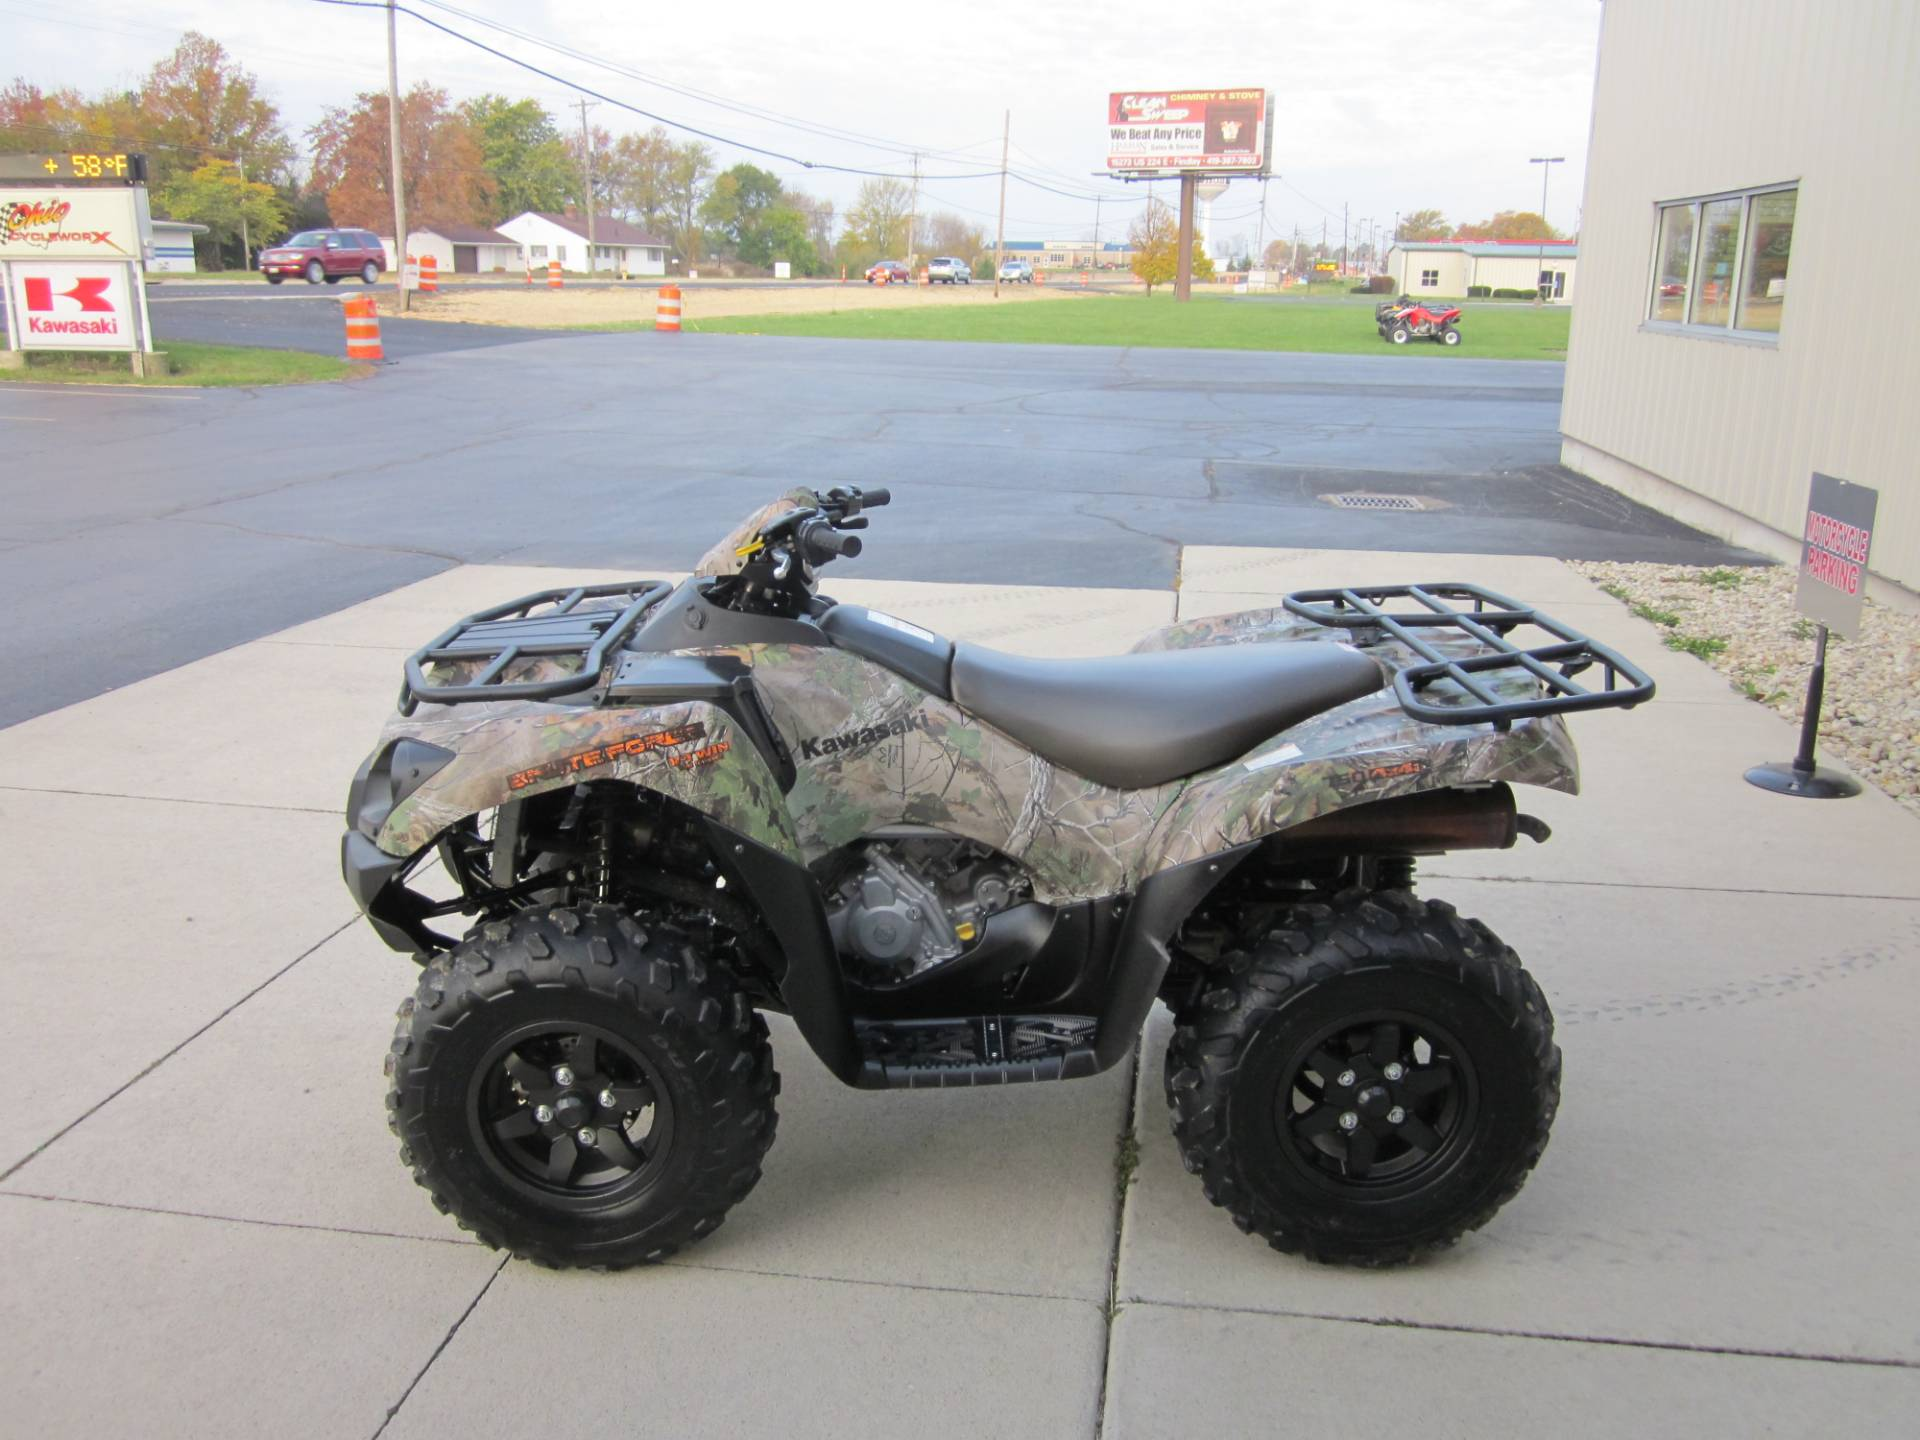 Used 2015 Kawasaki Brute Force® 750 4x4i EPS Camo ATVs in Lima, OH